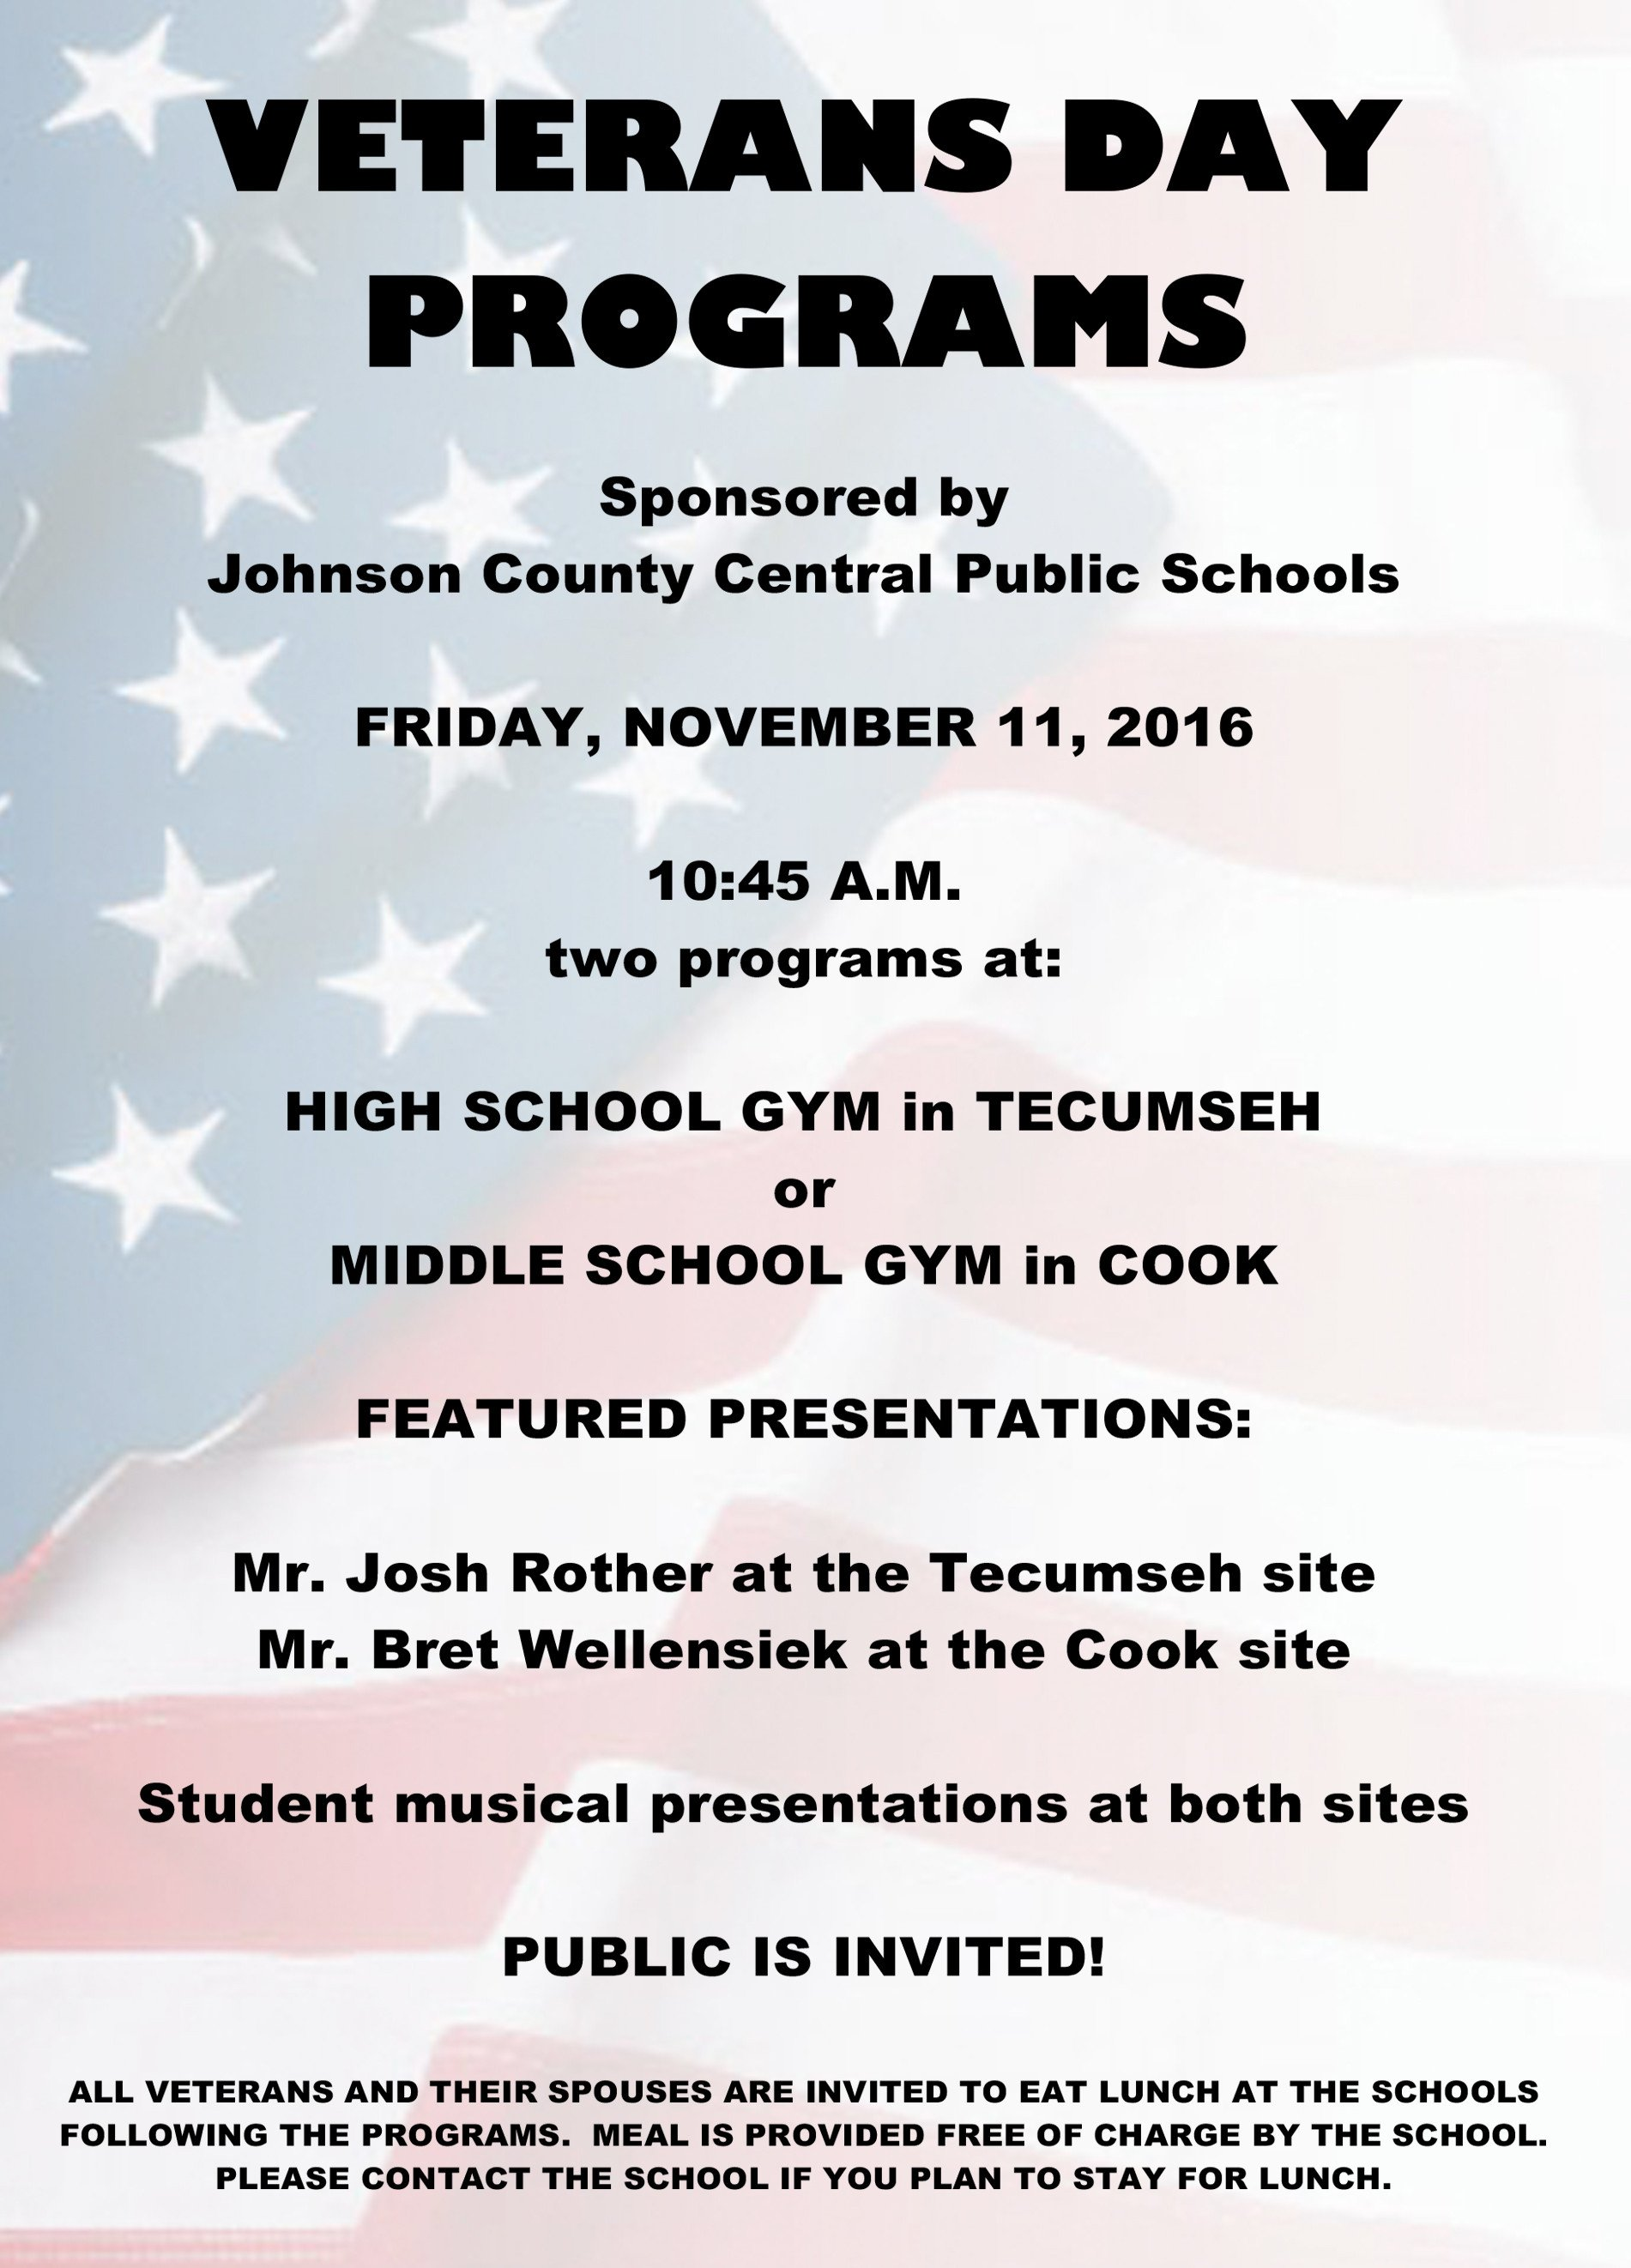 Veterans Day Program Template Johnson County Central Veterans Day Programs